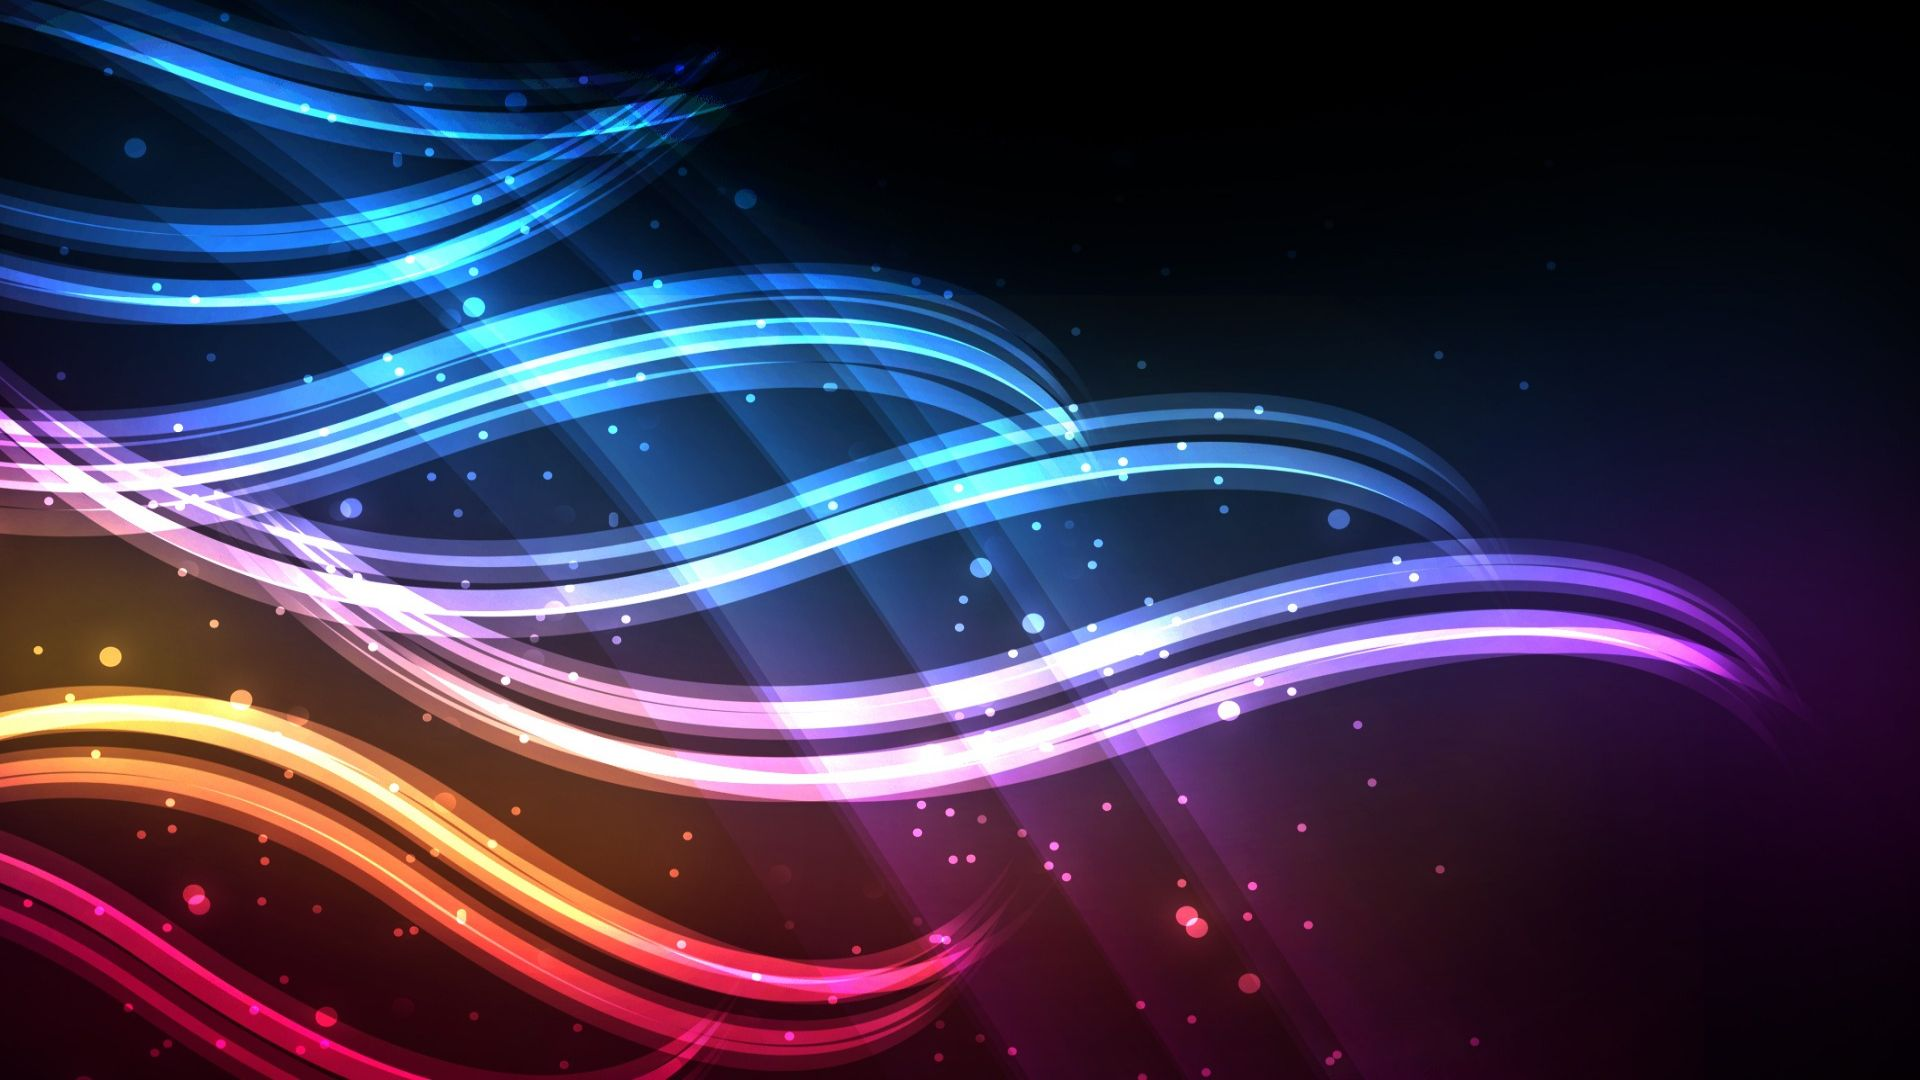 Color-Backround-Colorful-Curves-Wallpaper-with-1920x1080-Resolution